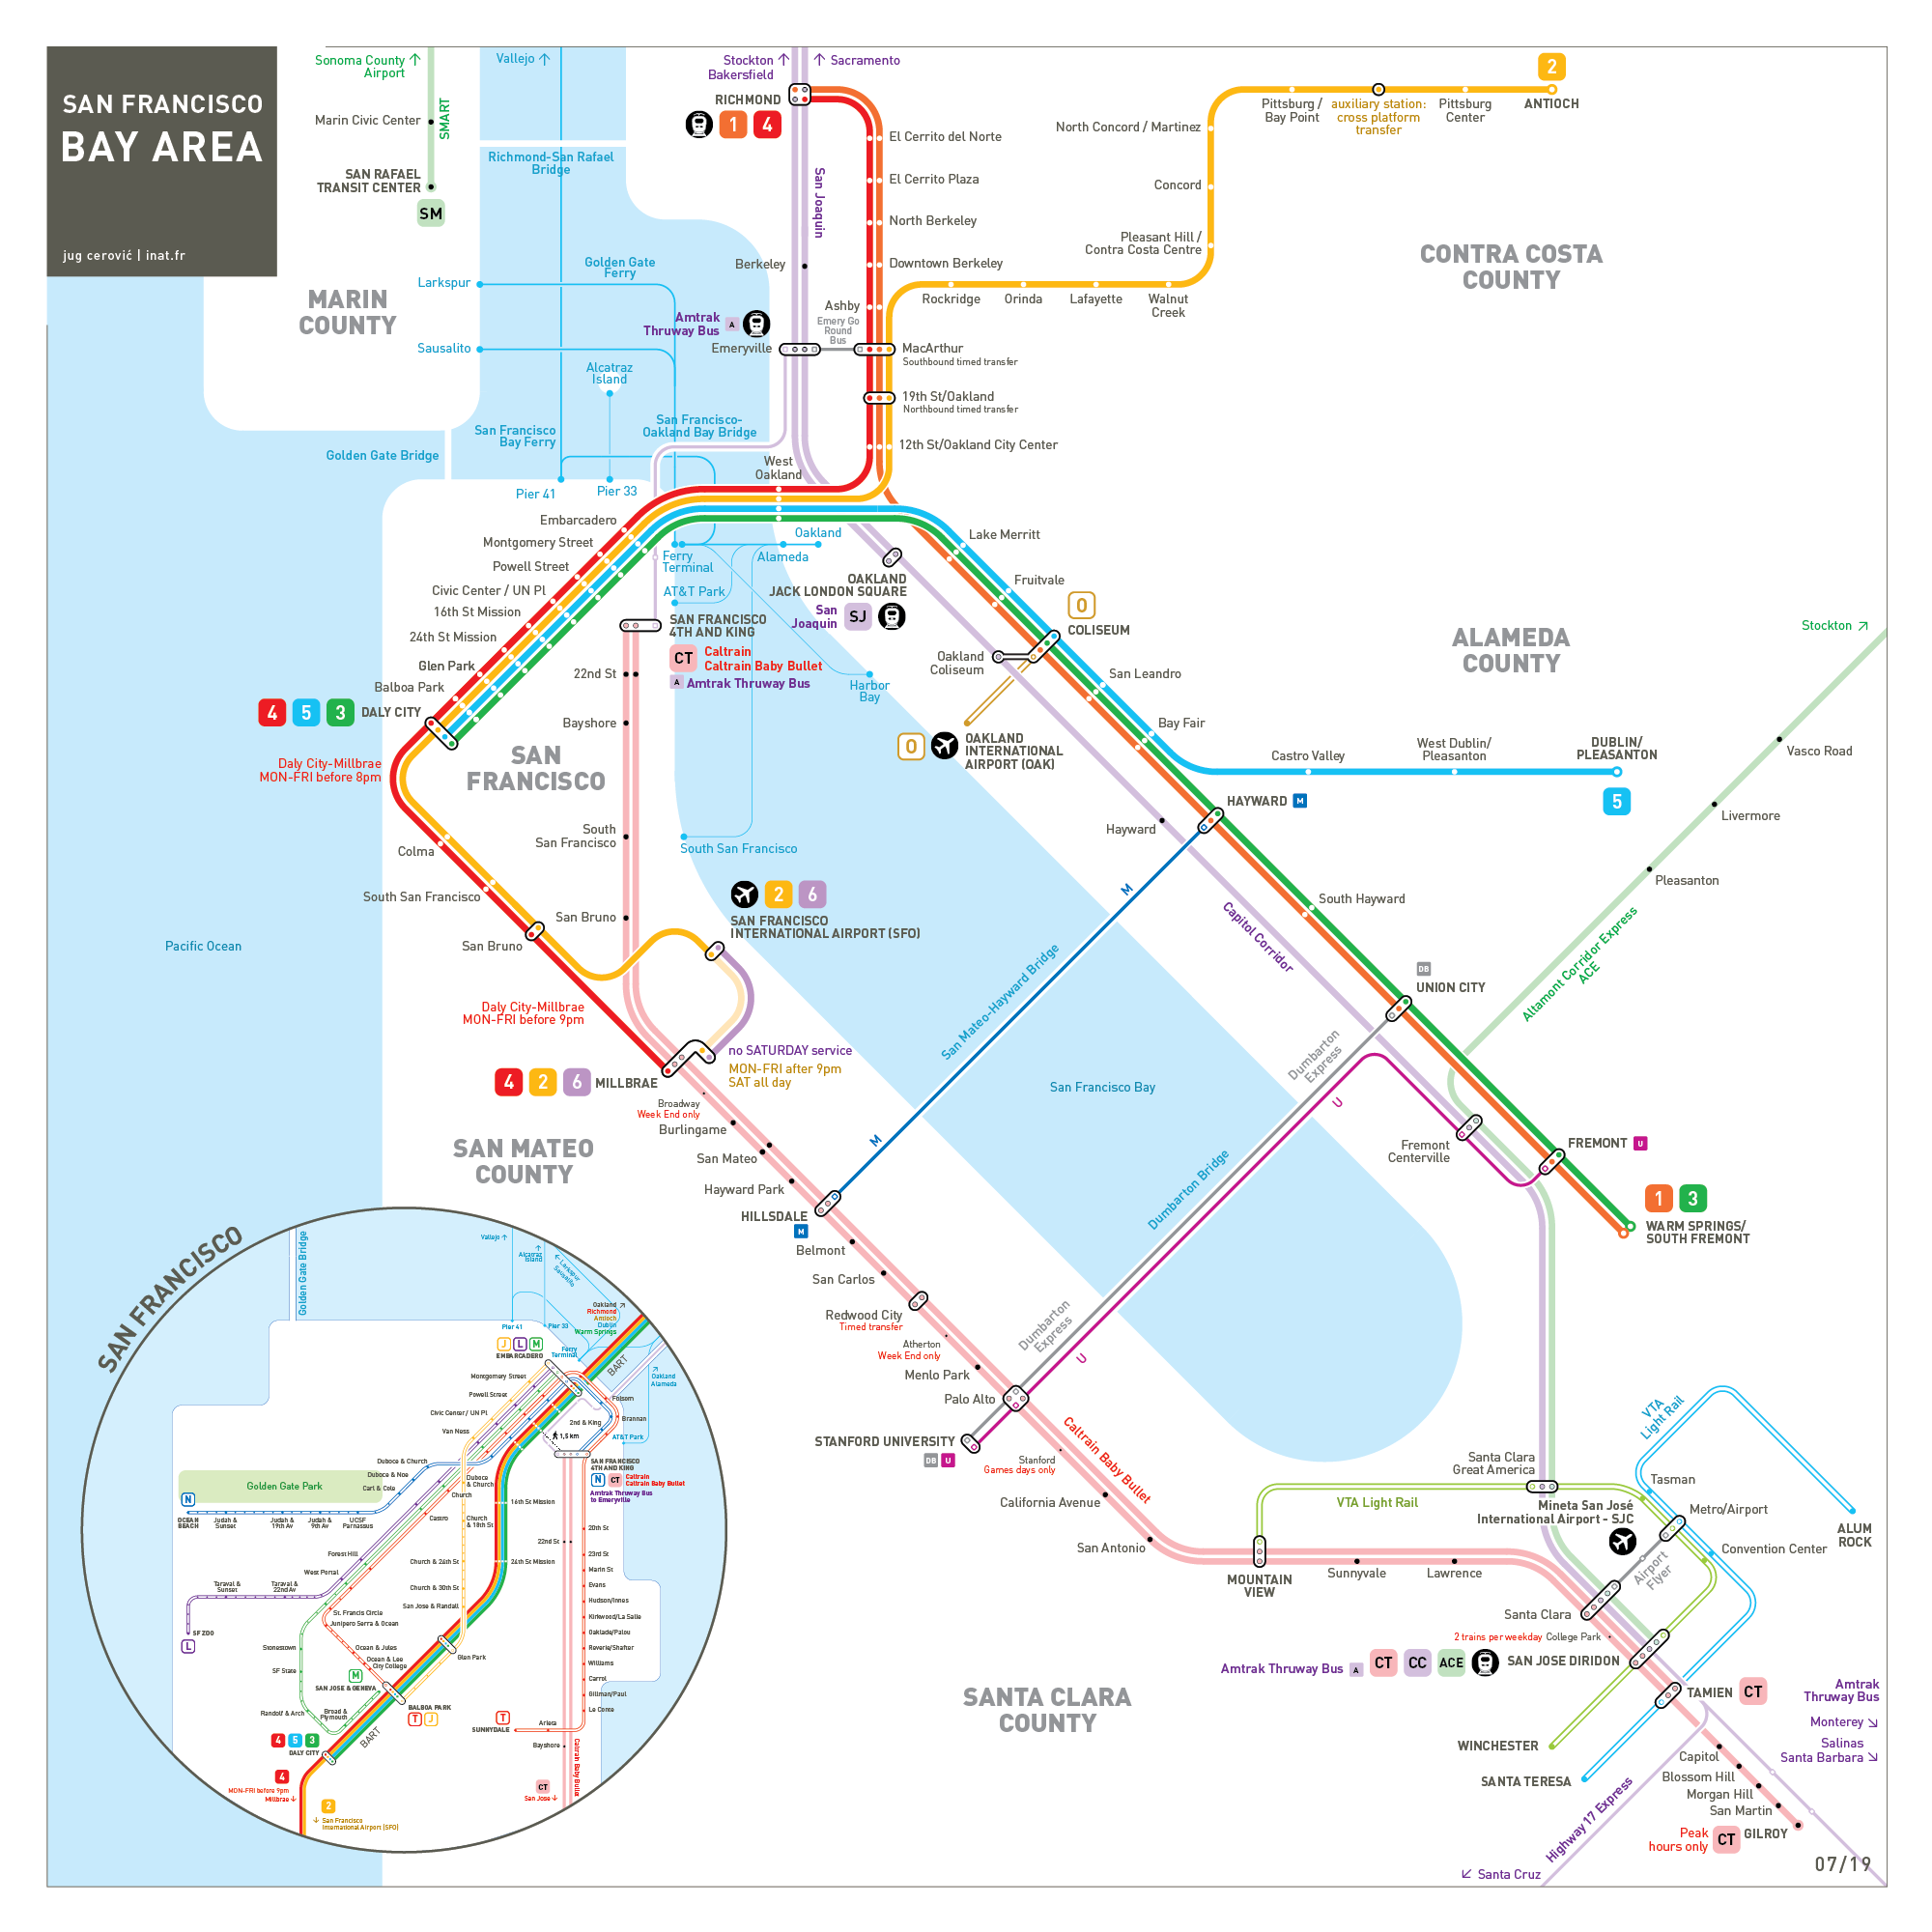 San Francisco Bay Area metro map